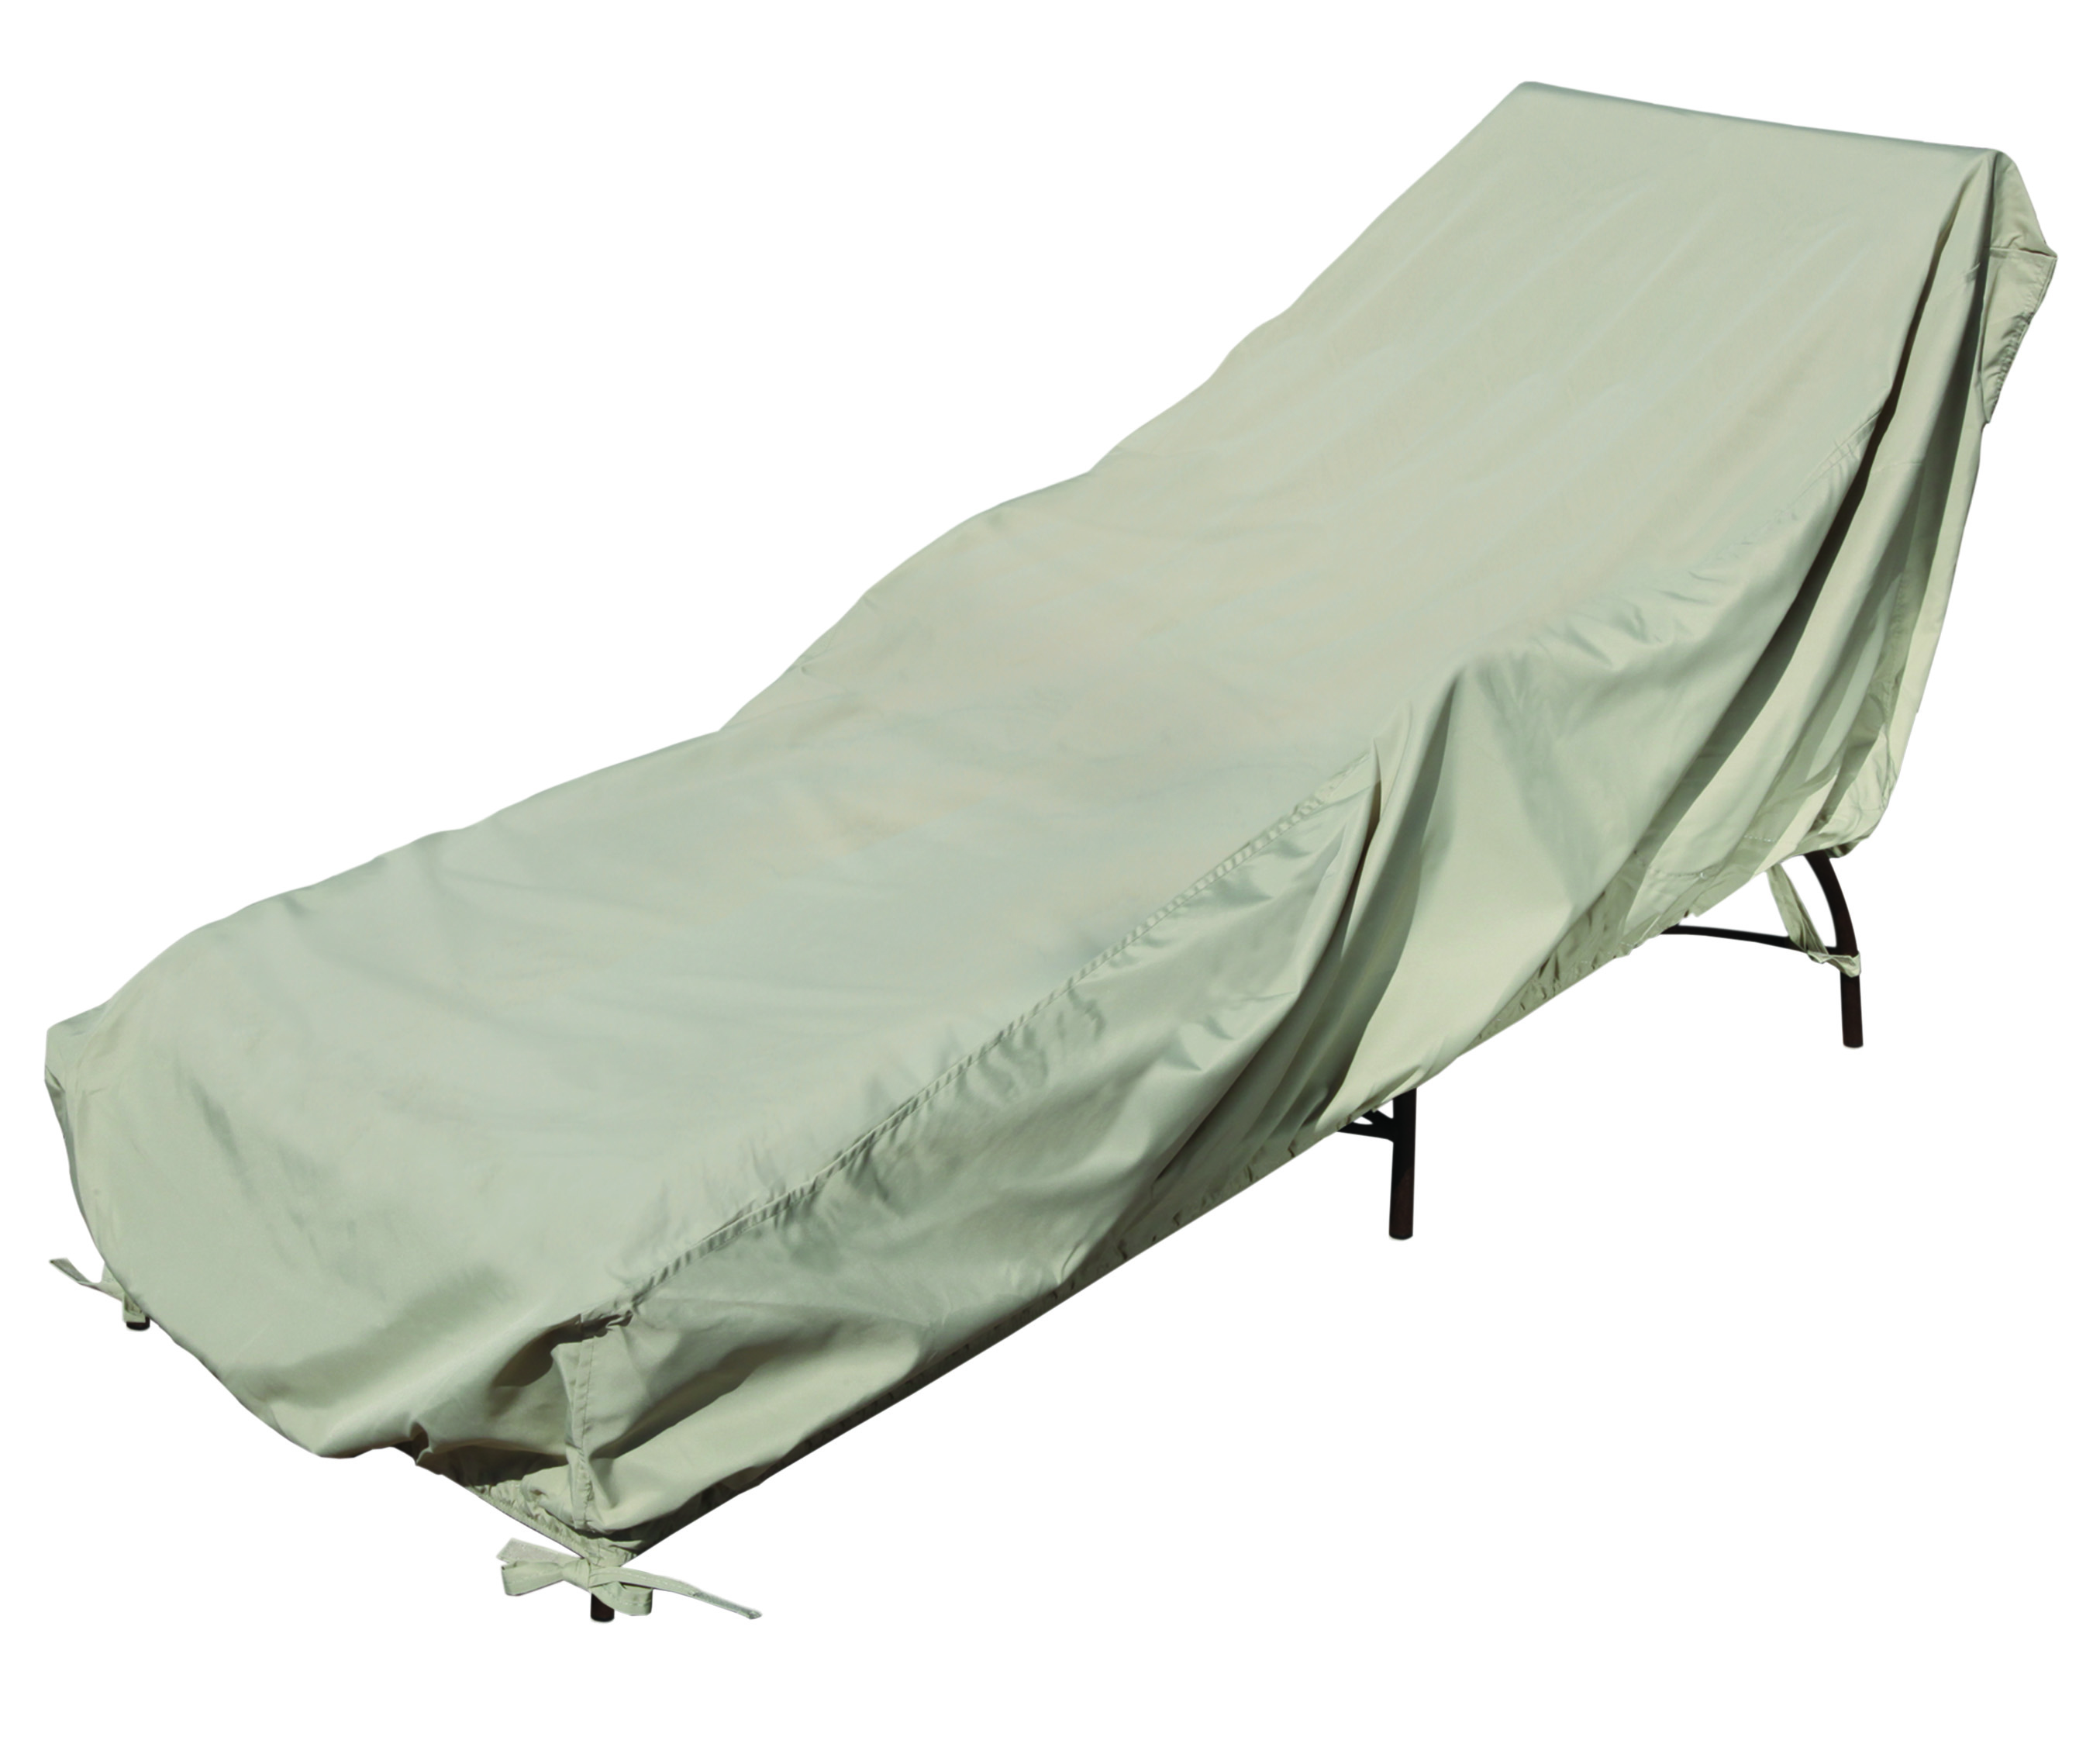 Treasure garden chaise lounge chair cover outdoor covers for Chaise lounge cover